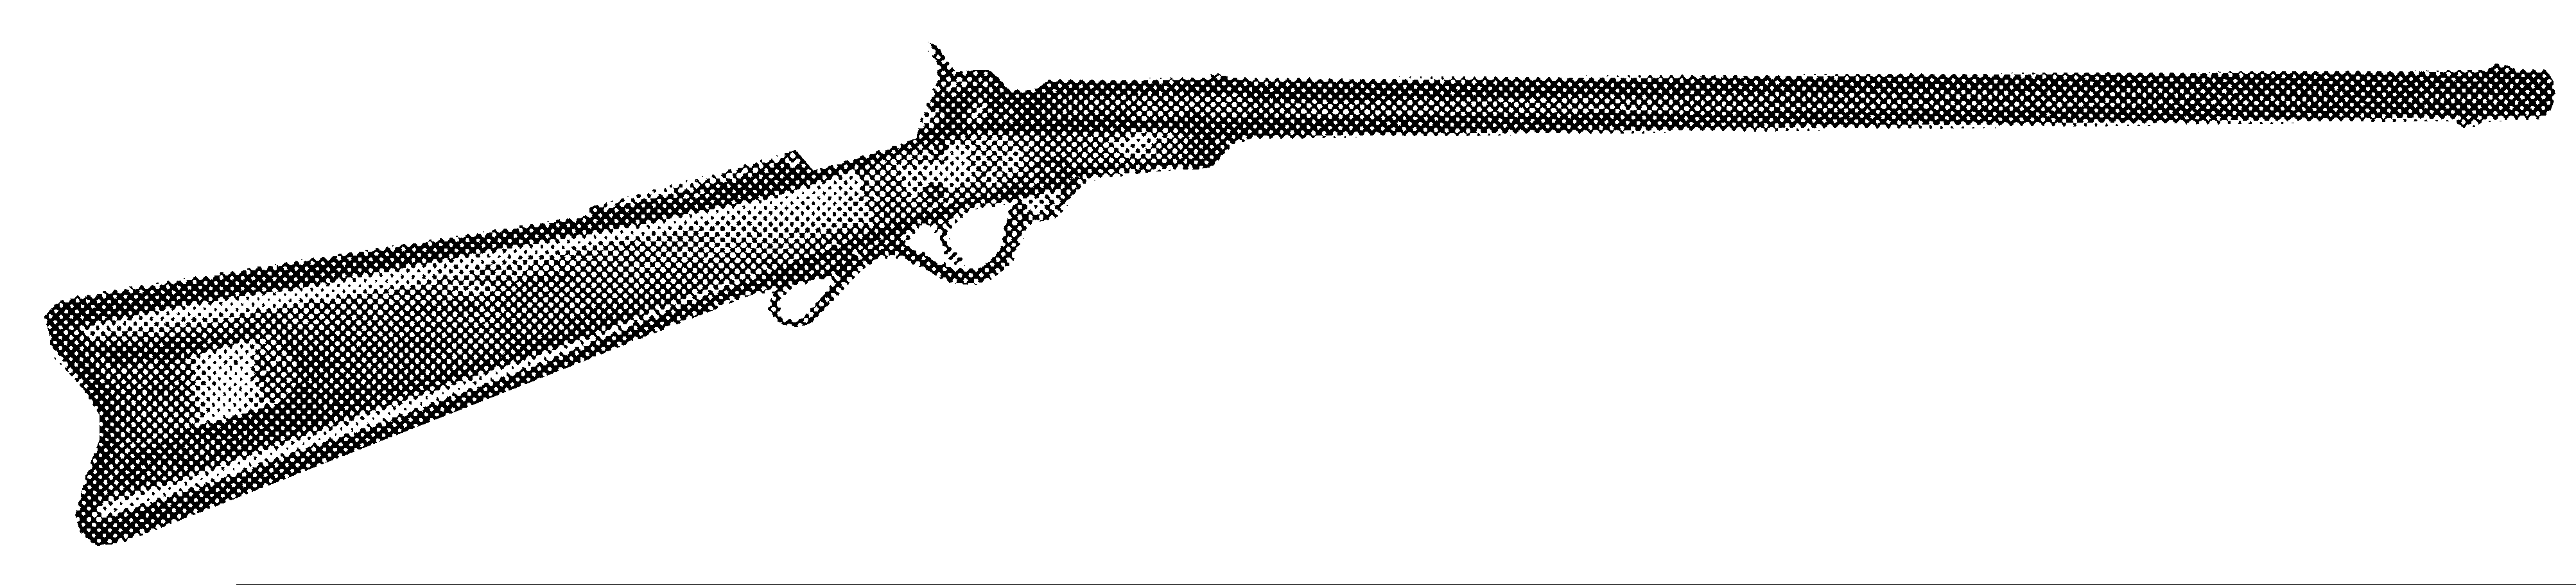 Maynard Patent Sporting Rifle